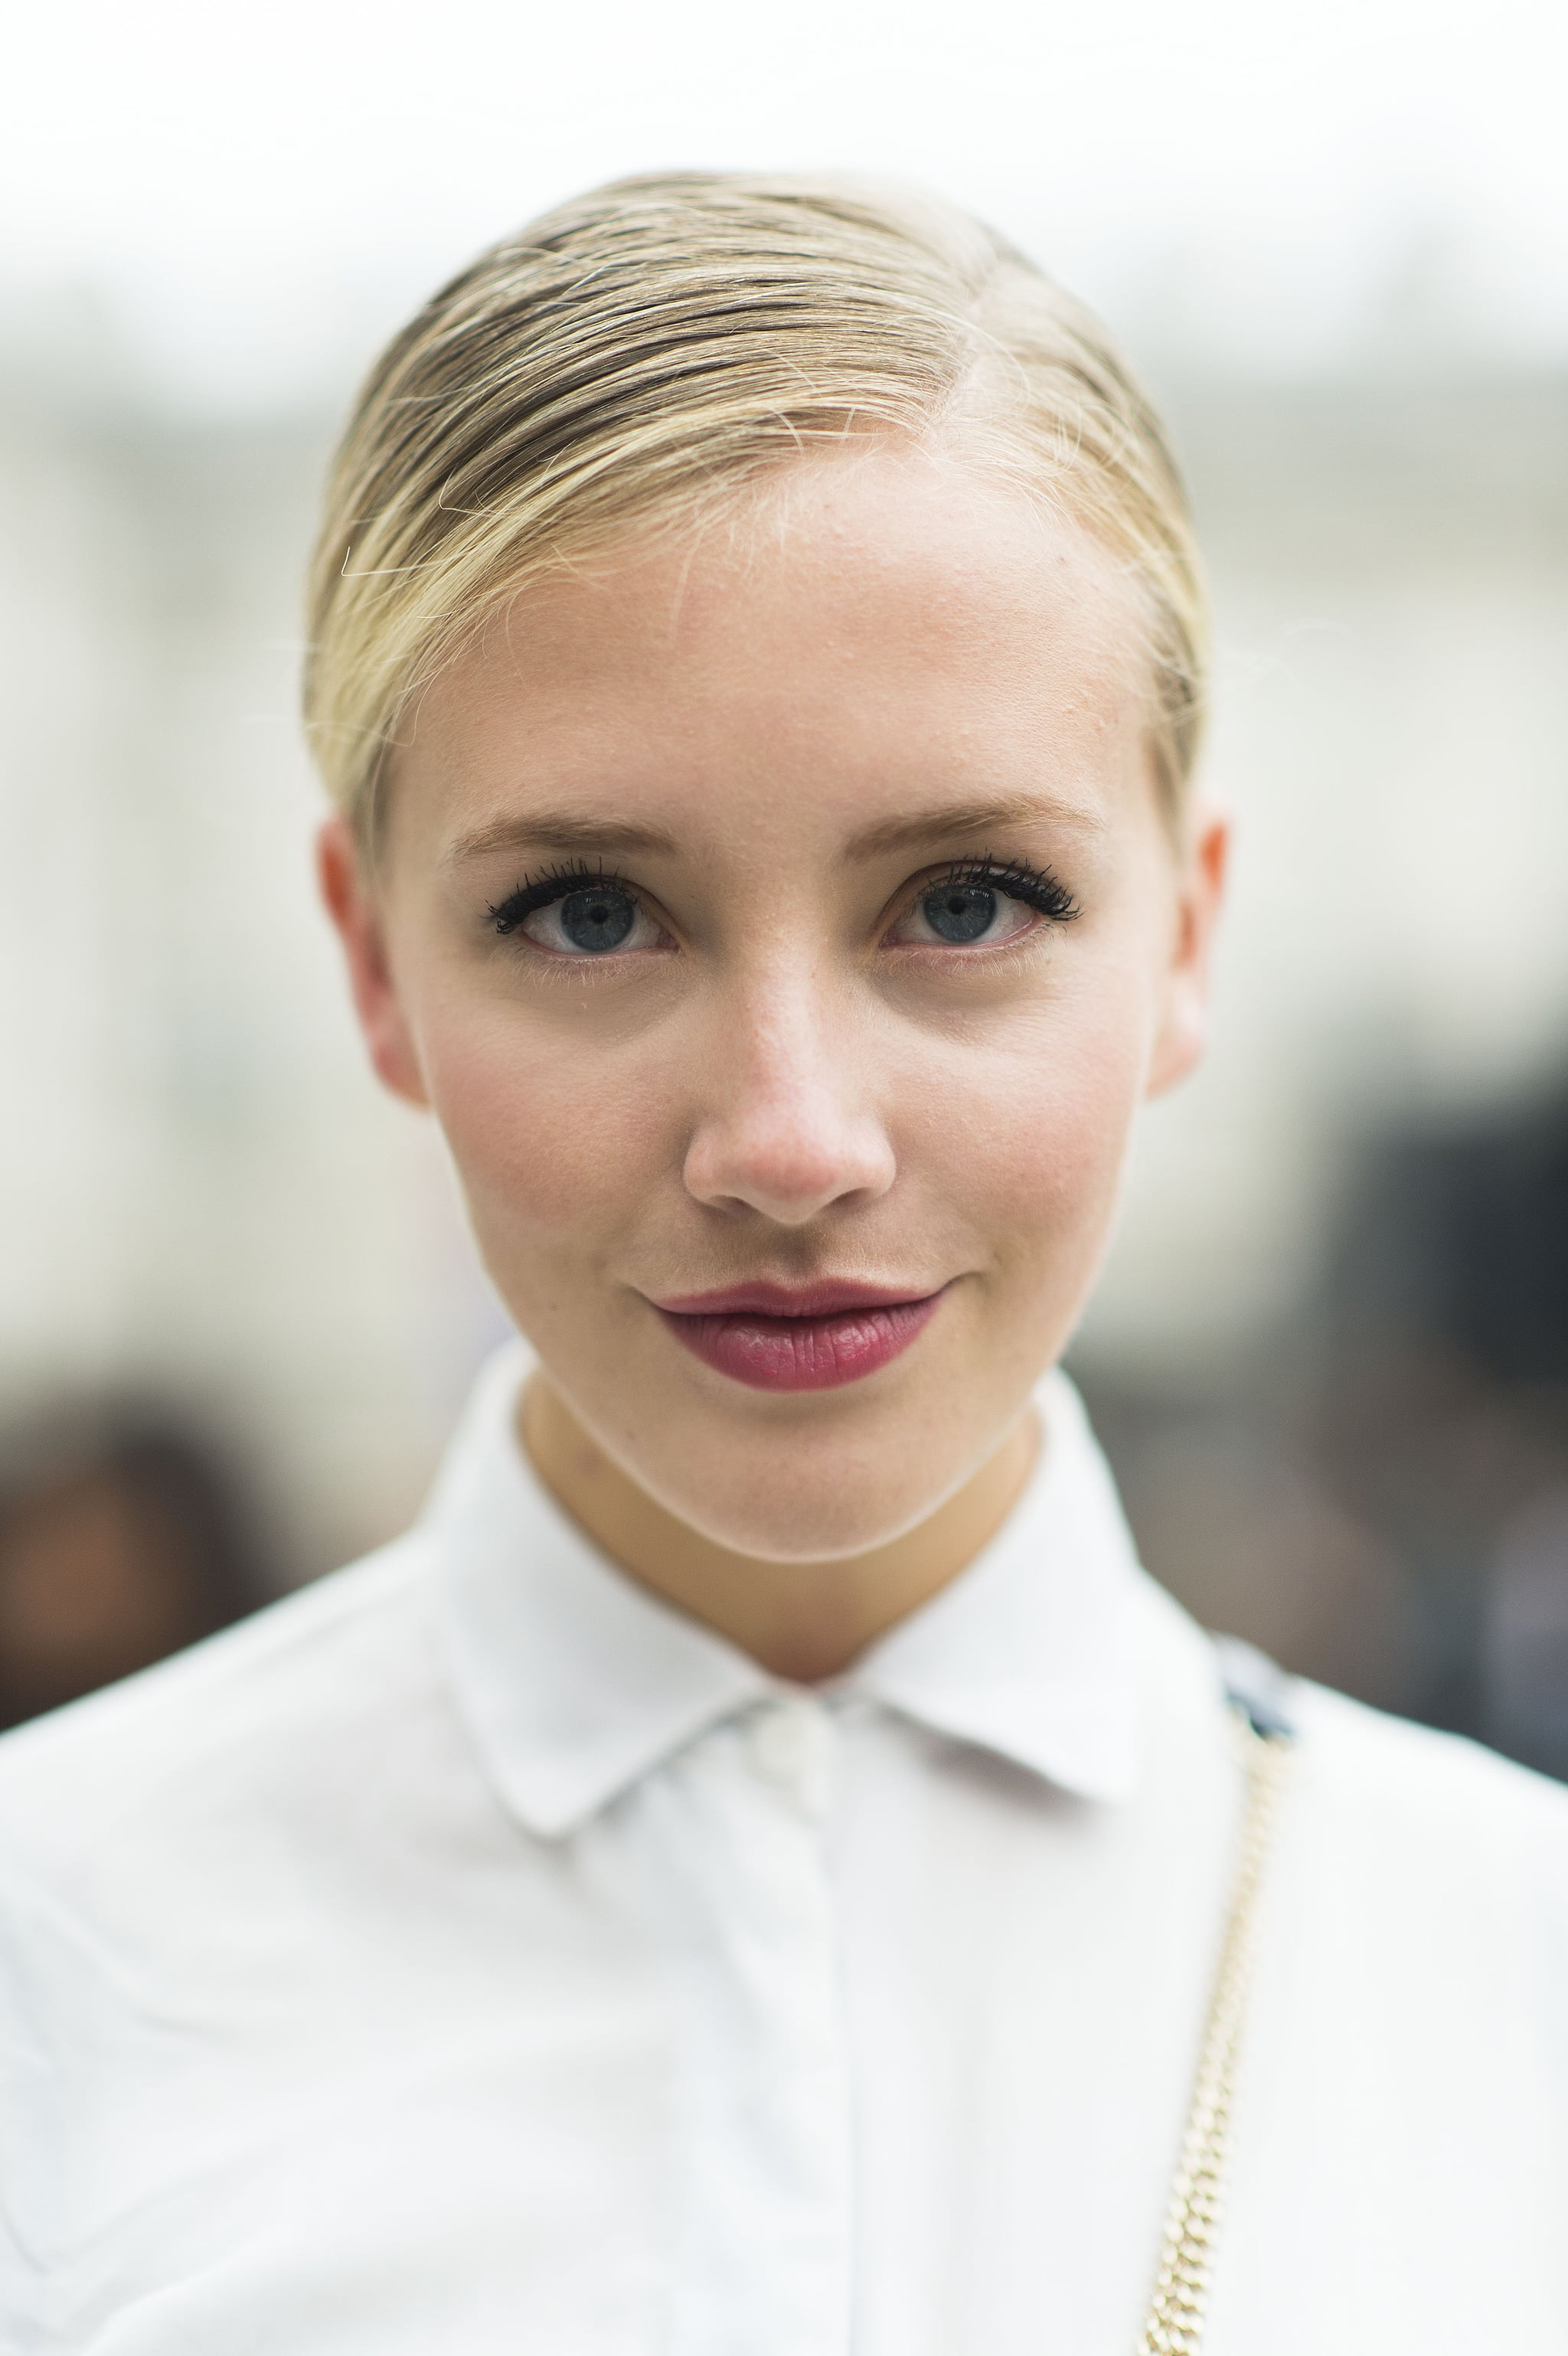 Couple a slicked-back updo with a rosy lipstick for a style that's effortlessly cool.  Source: Le 21ème   Adam Katz Sinding